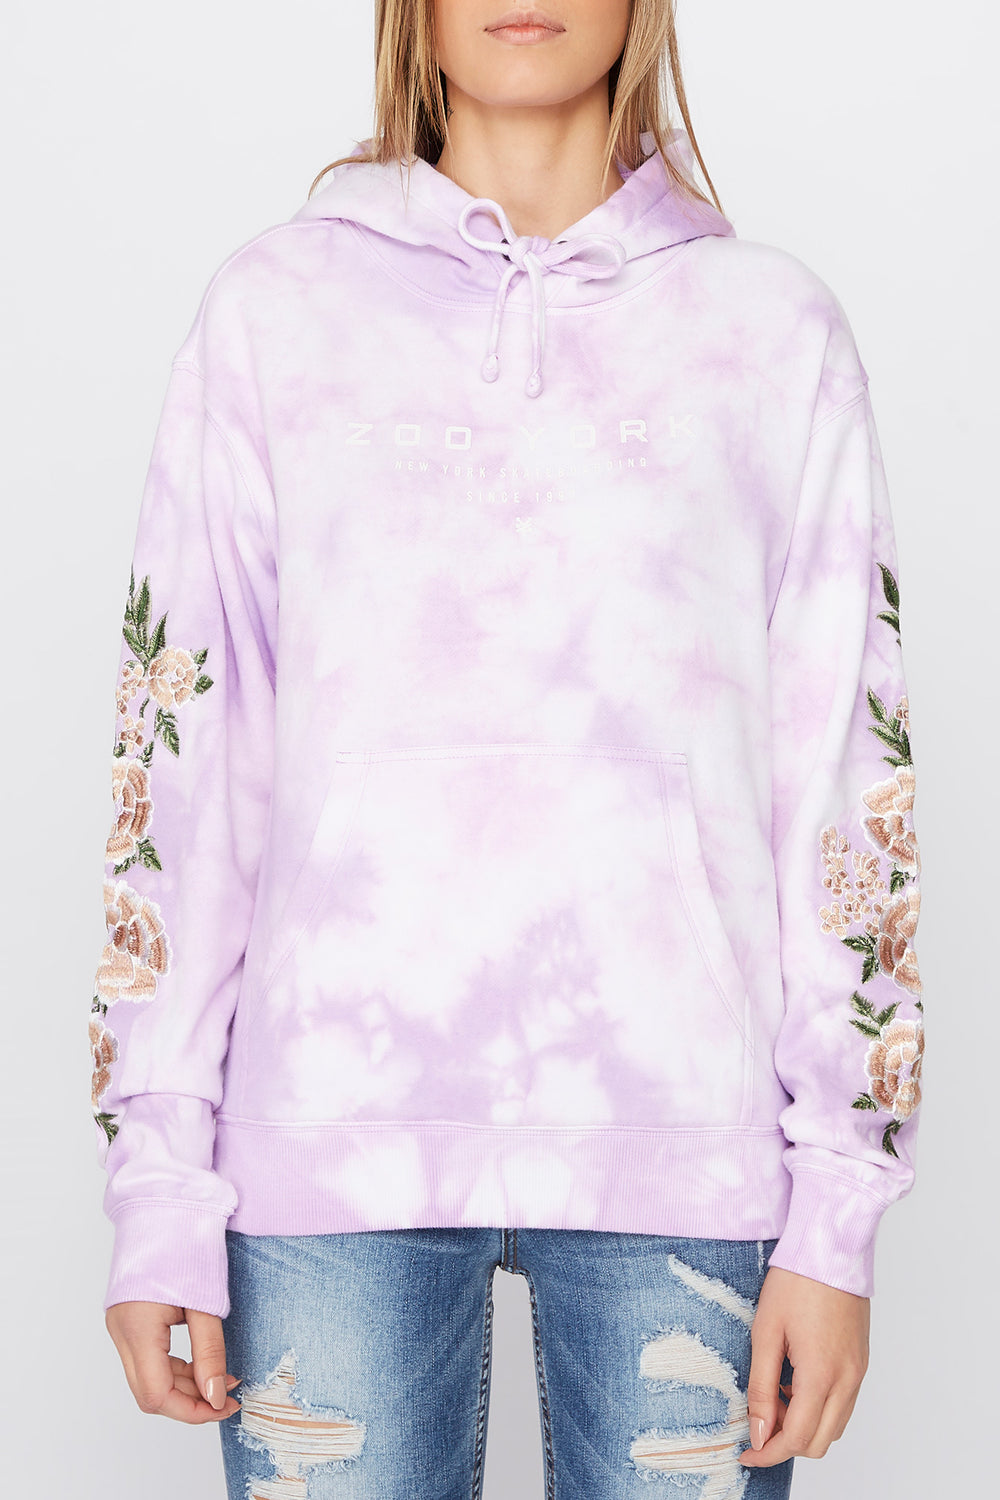 Zoo York Womens Embroidered Roses Hoodie Lilac